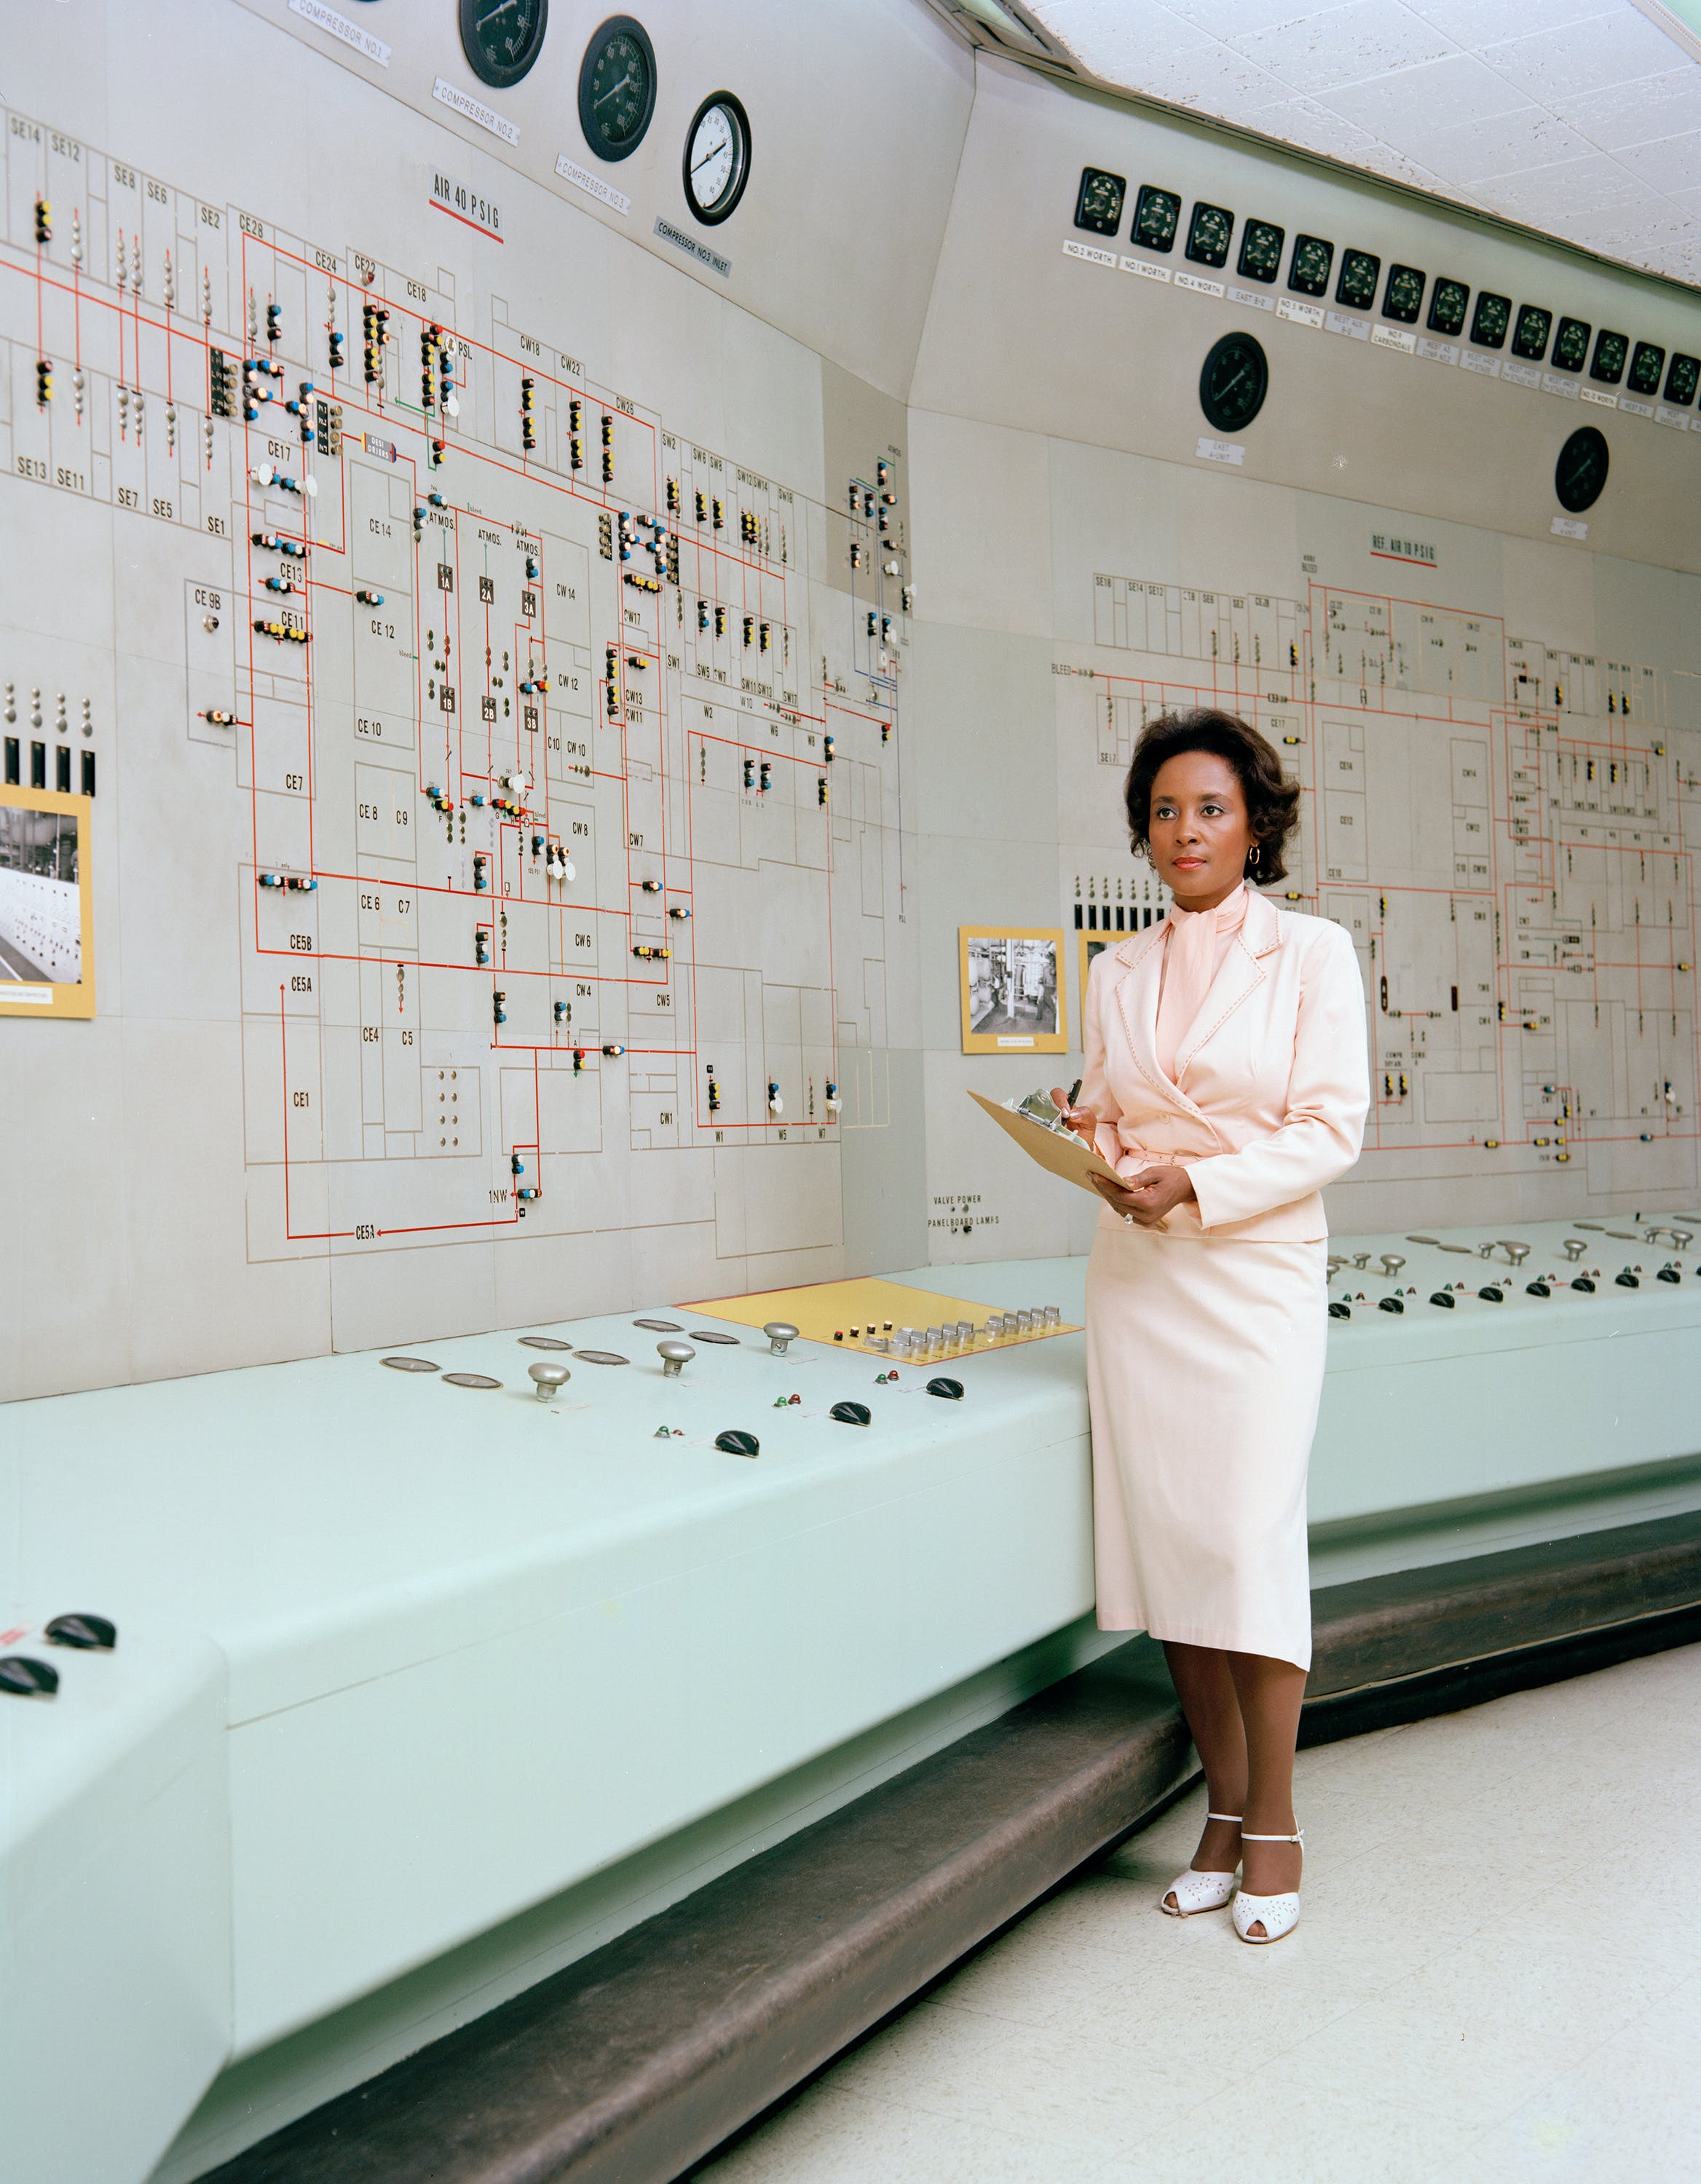 Annie Easley standing in a computer room